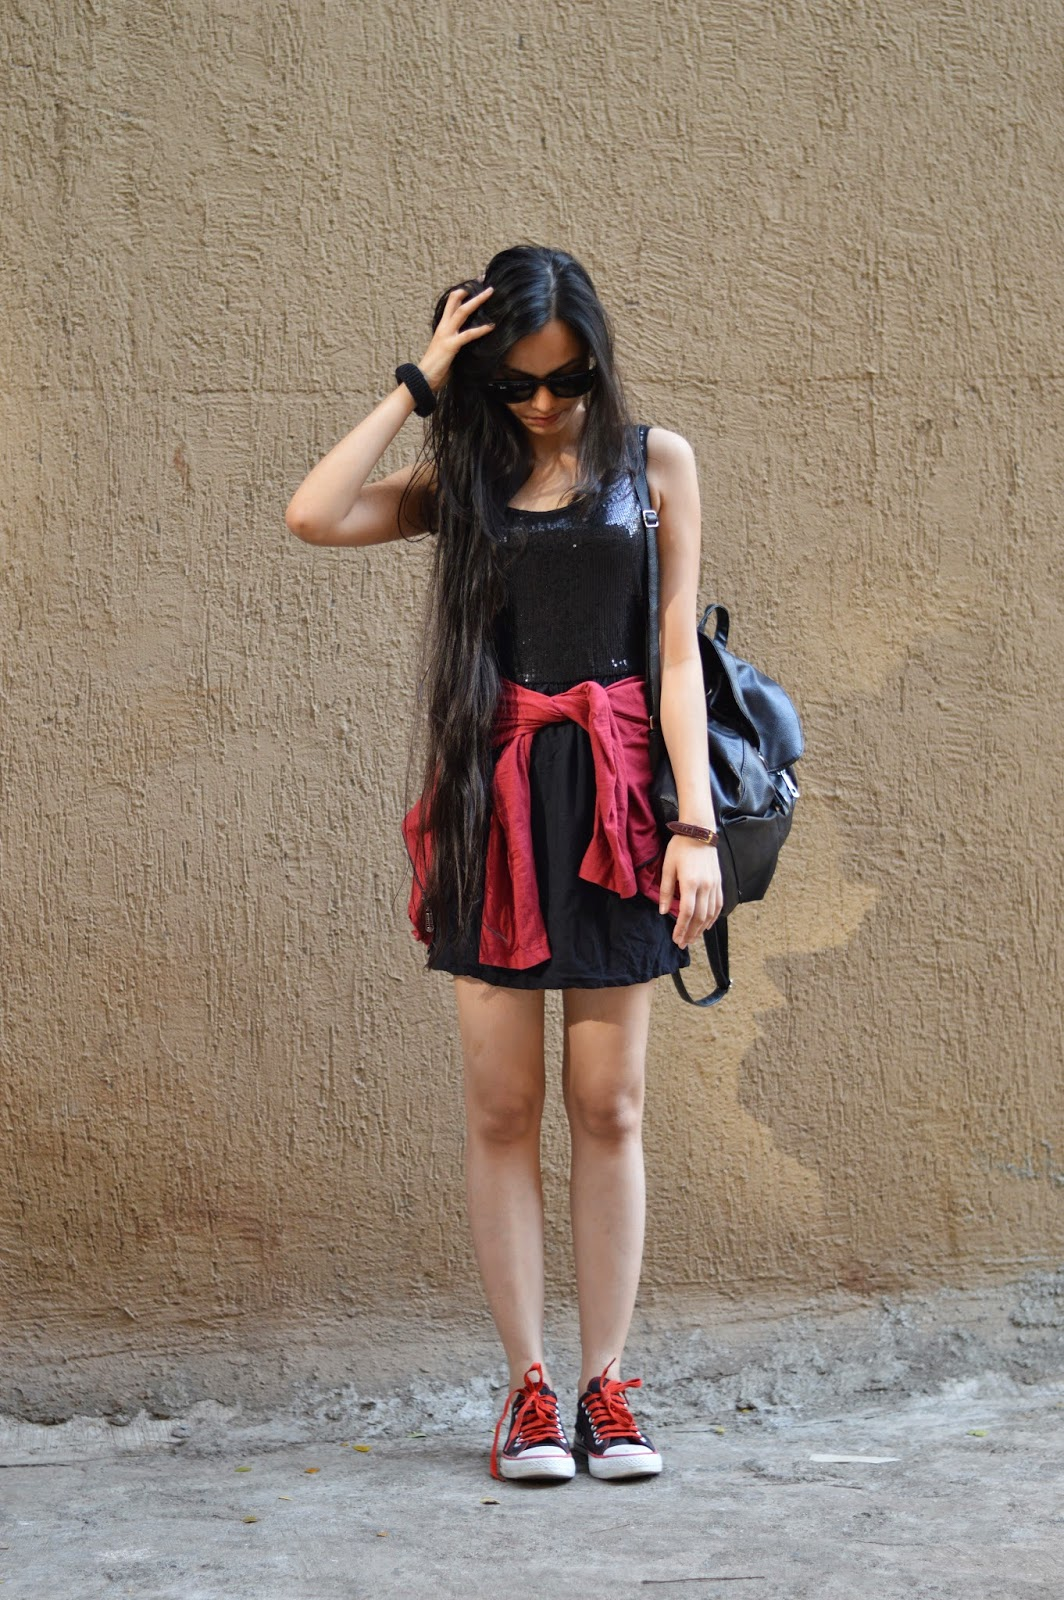 mumbai fashion blogger, sequins, how to wear sequins during the day, sequins at daytime, foldable raybans, converse, punk rock, how to wear converse with dresses, fashion blogger